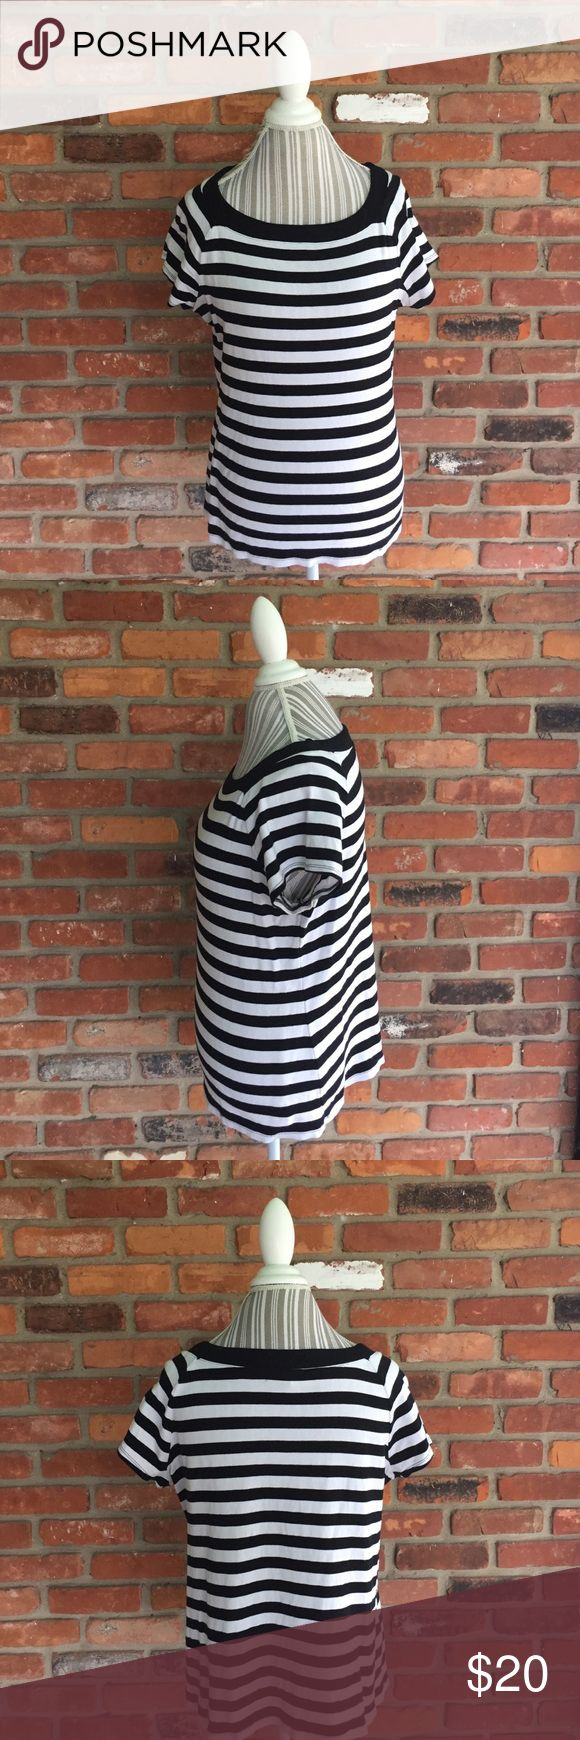 DressBarn Black and White Short Sleeve Top 1X. Dress Barn Black and White Short Sleeve Top. Size 1x. Ready for a weekend of relaxation this is a must have. Simple and clean. Dress it up with a skirt for the work week or lounge pants come 5pm. The versatility of this top is amazing and it's well taken care of. Dress Barn Tops Tees - Short Sleeve